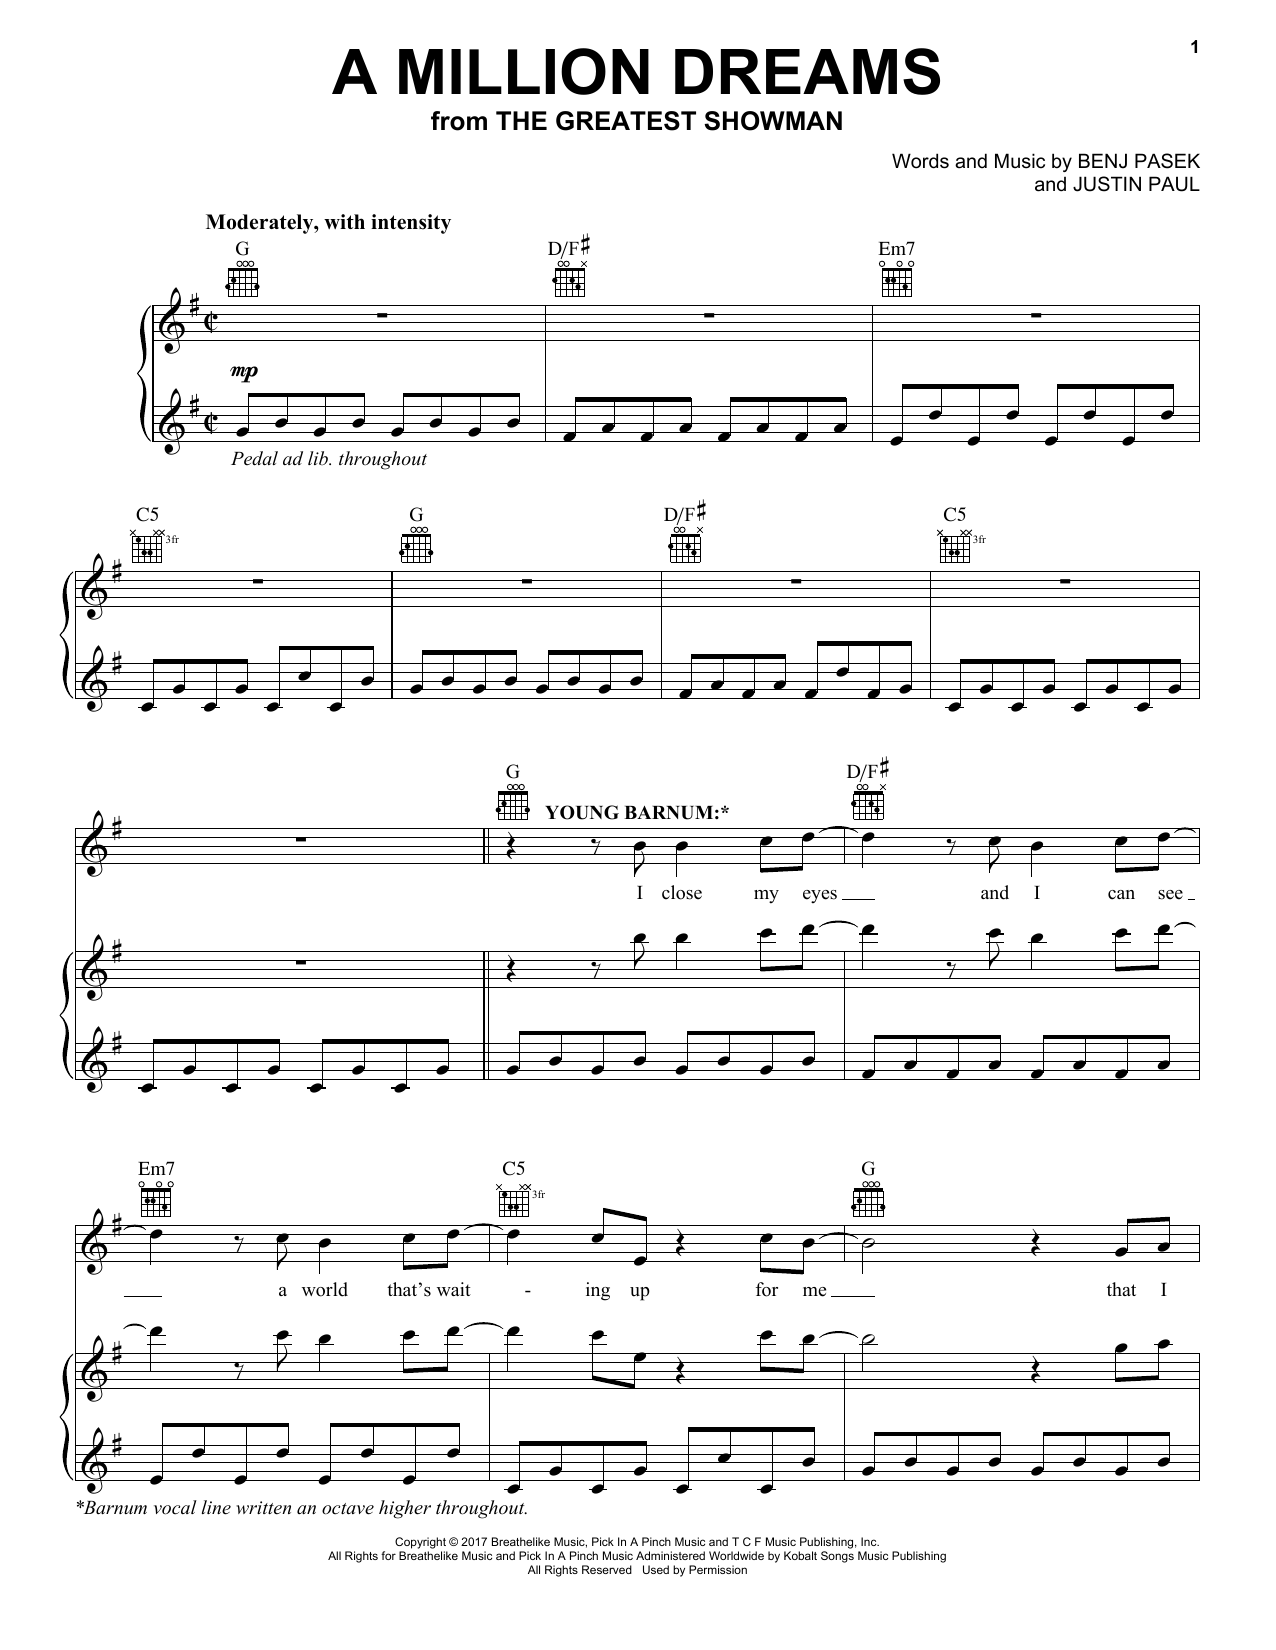 Pasek & Paul A Million Dreams (from The Greatest Showman) sheet music notes and chords. Download Printable PDF.